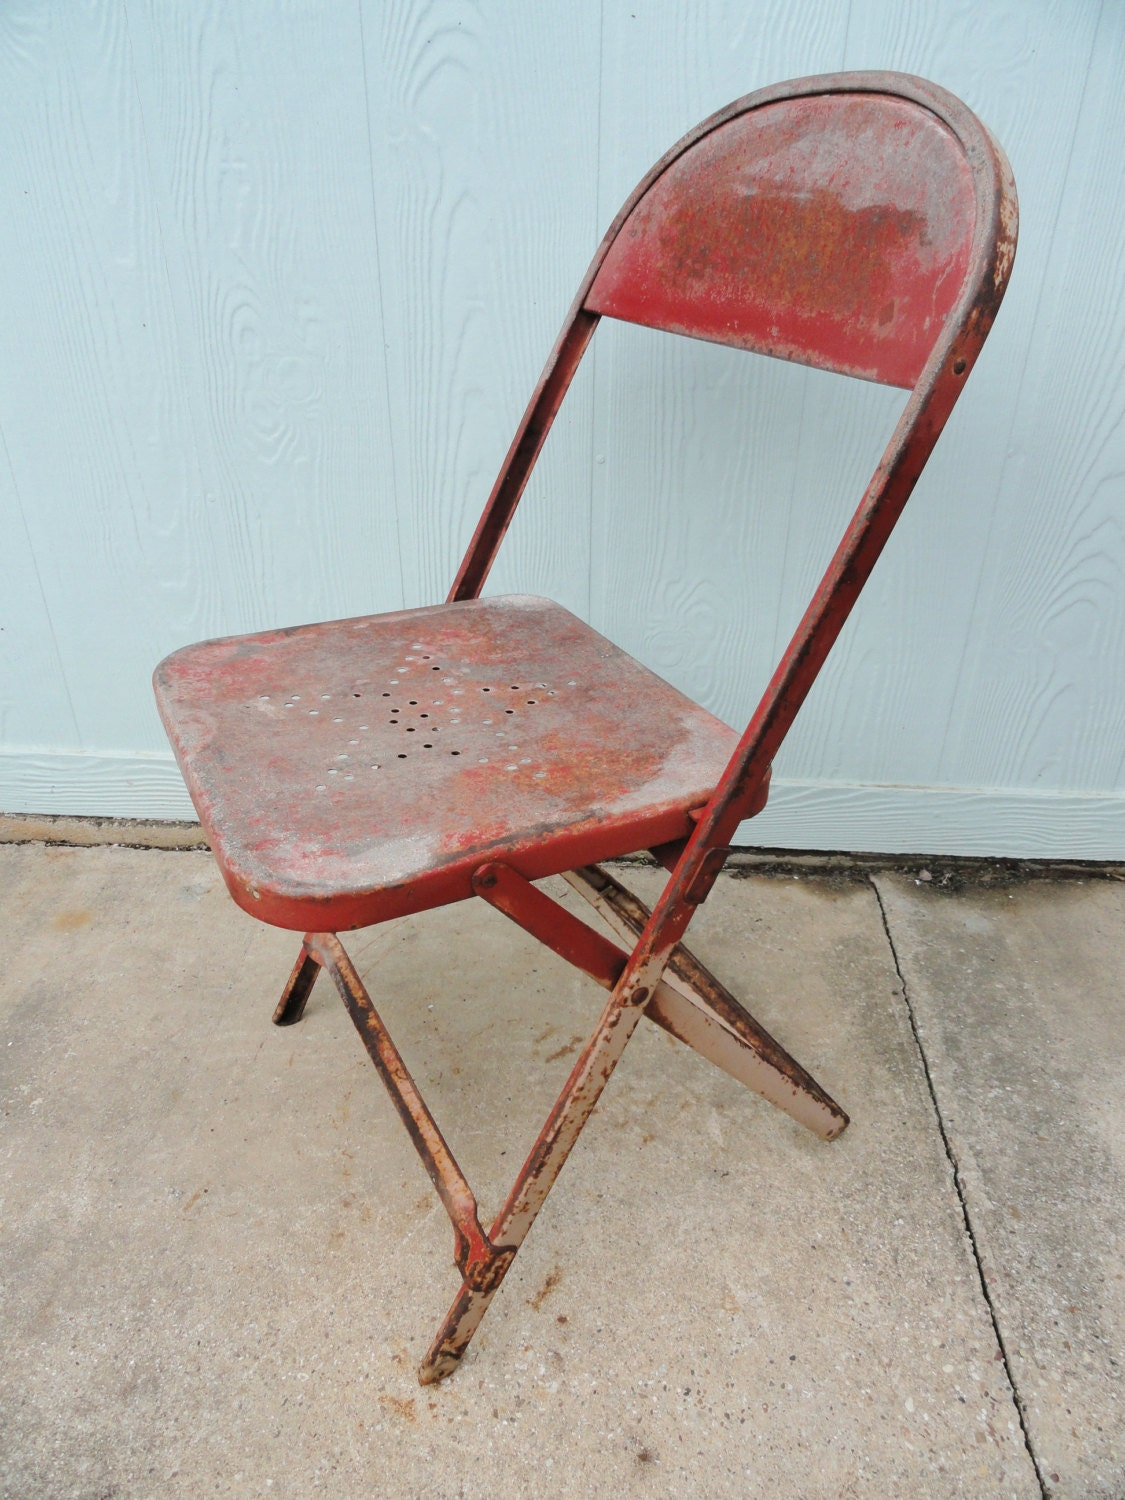 Vintage Chair Metal Folding Texas Star Punched By